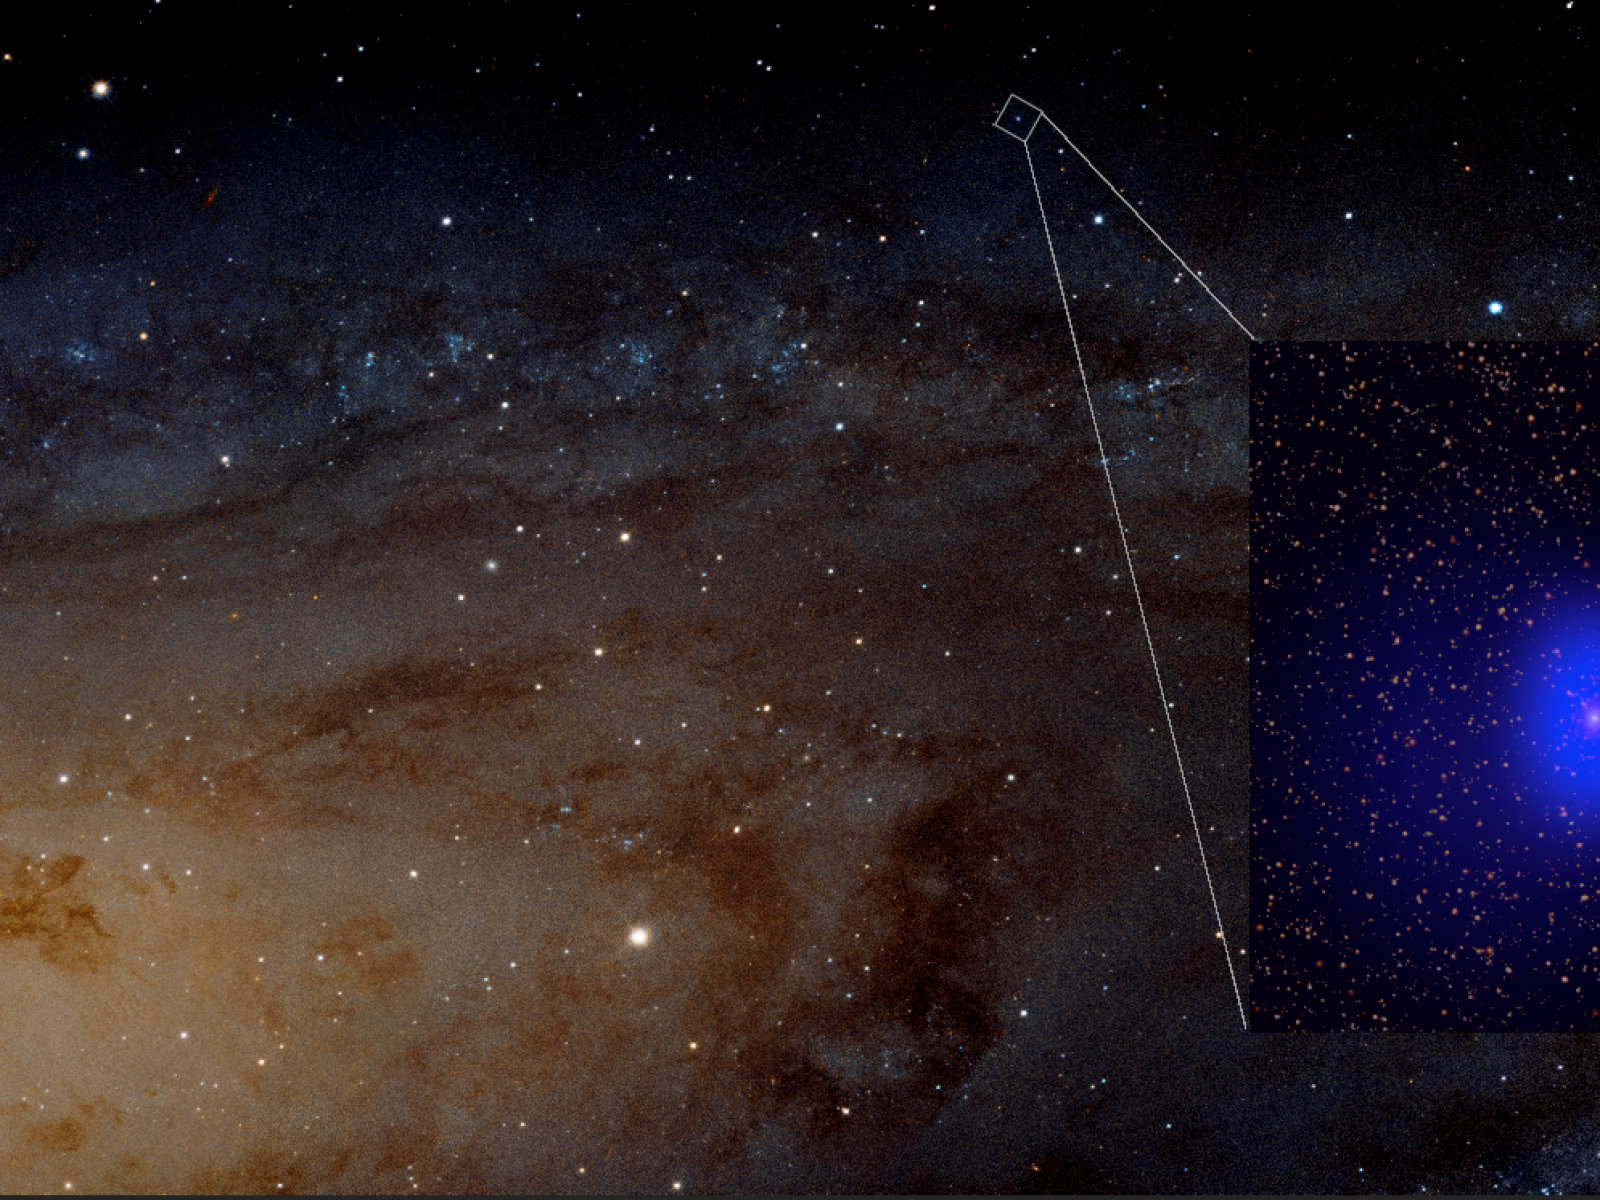 Supermassive Black Holes Spotted in Photo of Andromeda Are